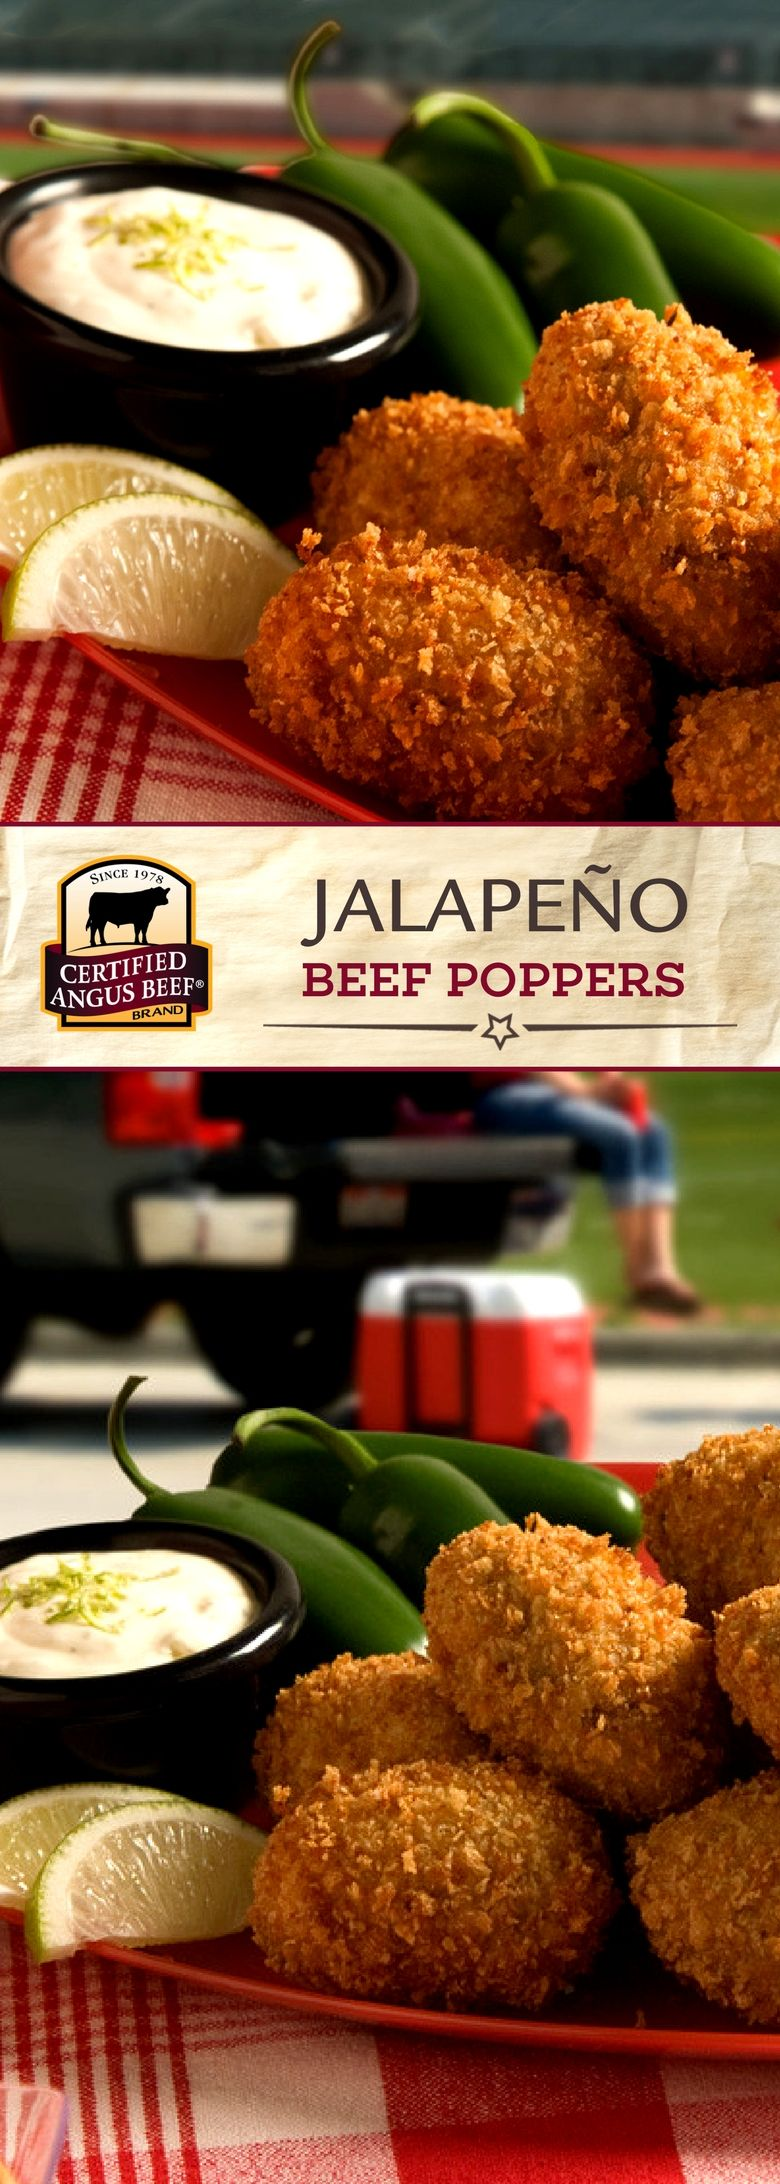 Beef up your Jalapeño Poppers with Certified Angus Beef ®️️️️️️️️️️️️️️️️️ brand beef to start your game day party off with a bang! An EASY appetizer that's BIG on FLAVOR to keep game day fans happy! Serve Jalapeño Beef Poppers as a party appetizer, easy football food, or a fun snack any night of the week! #bestangusbeef #certifiedangusbeef #appetizerrecipes #jalapenopoppers #easyrecipes #partyrecipe #gameday #footballfood